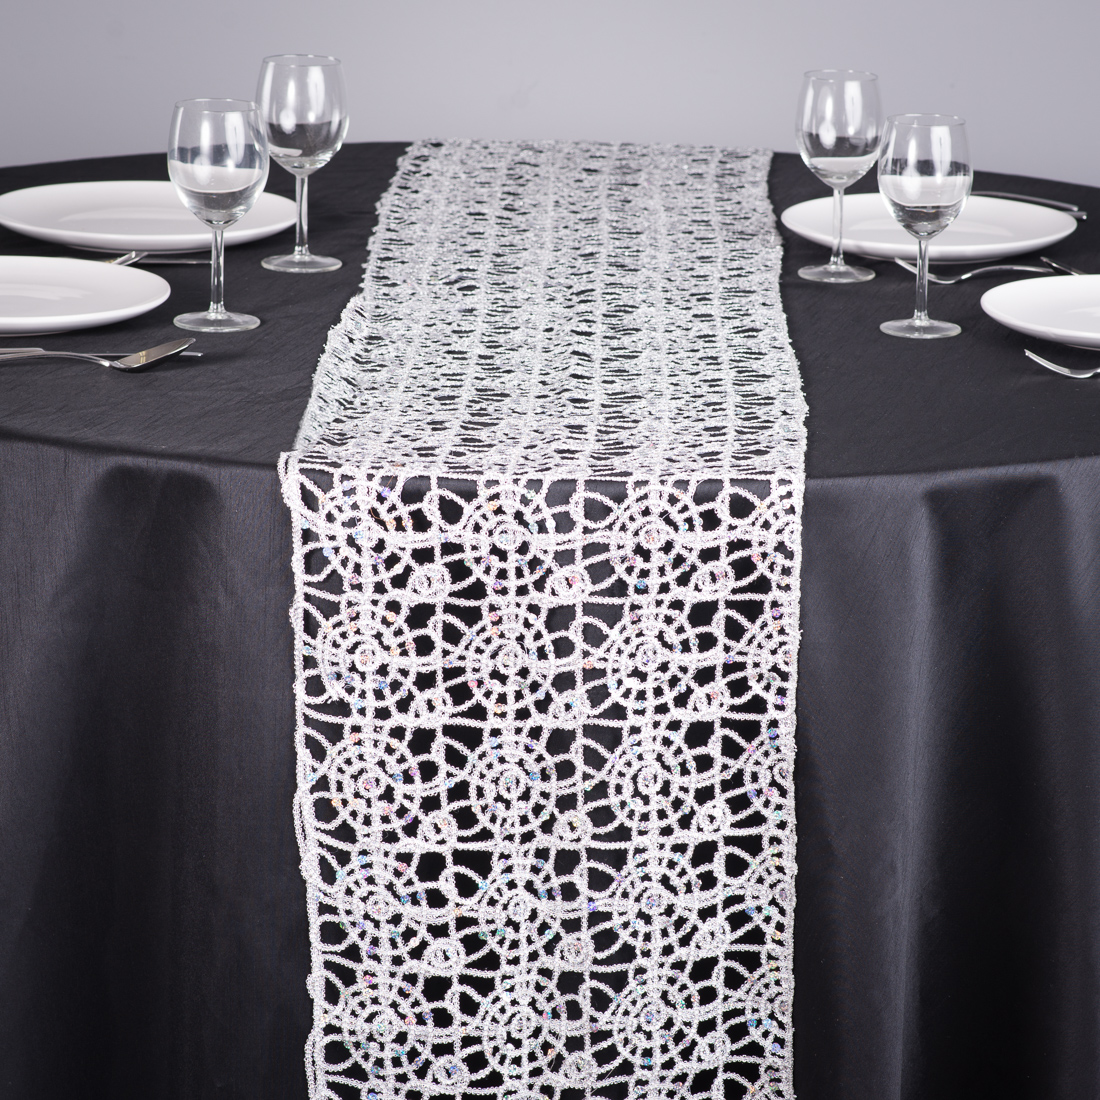 Lace Table Runners | Snowflake Table Runner | Burlap Runners Wedding